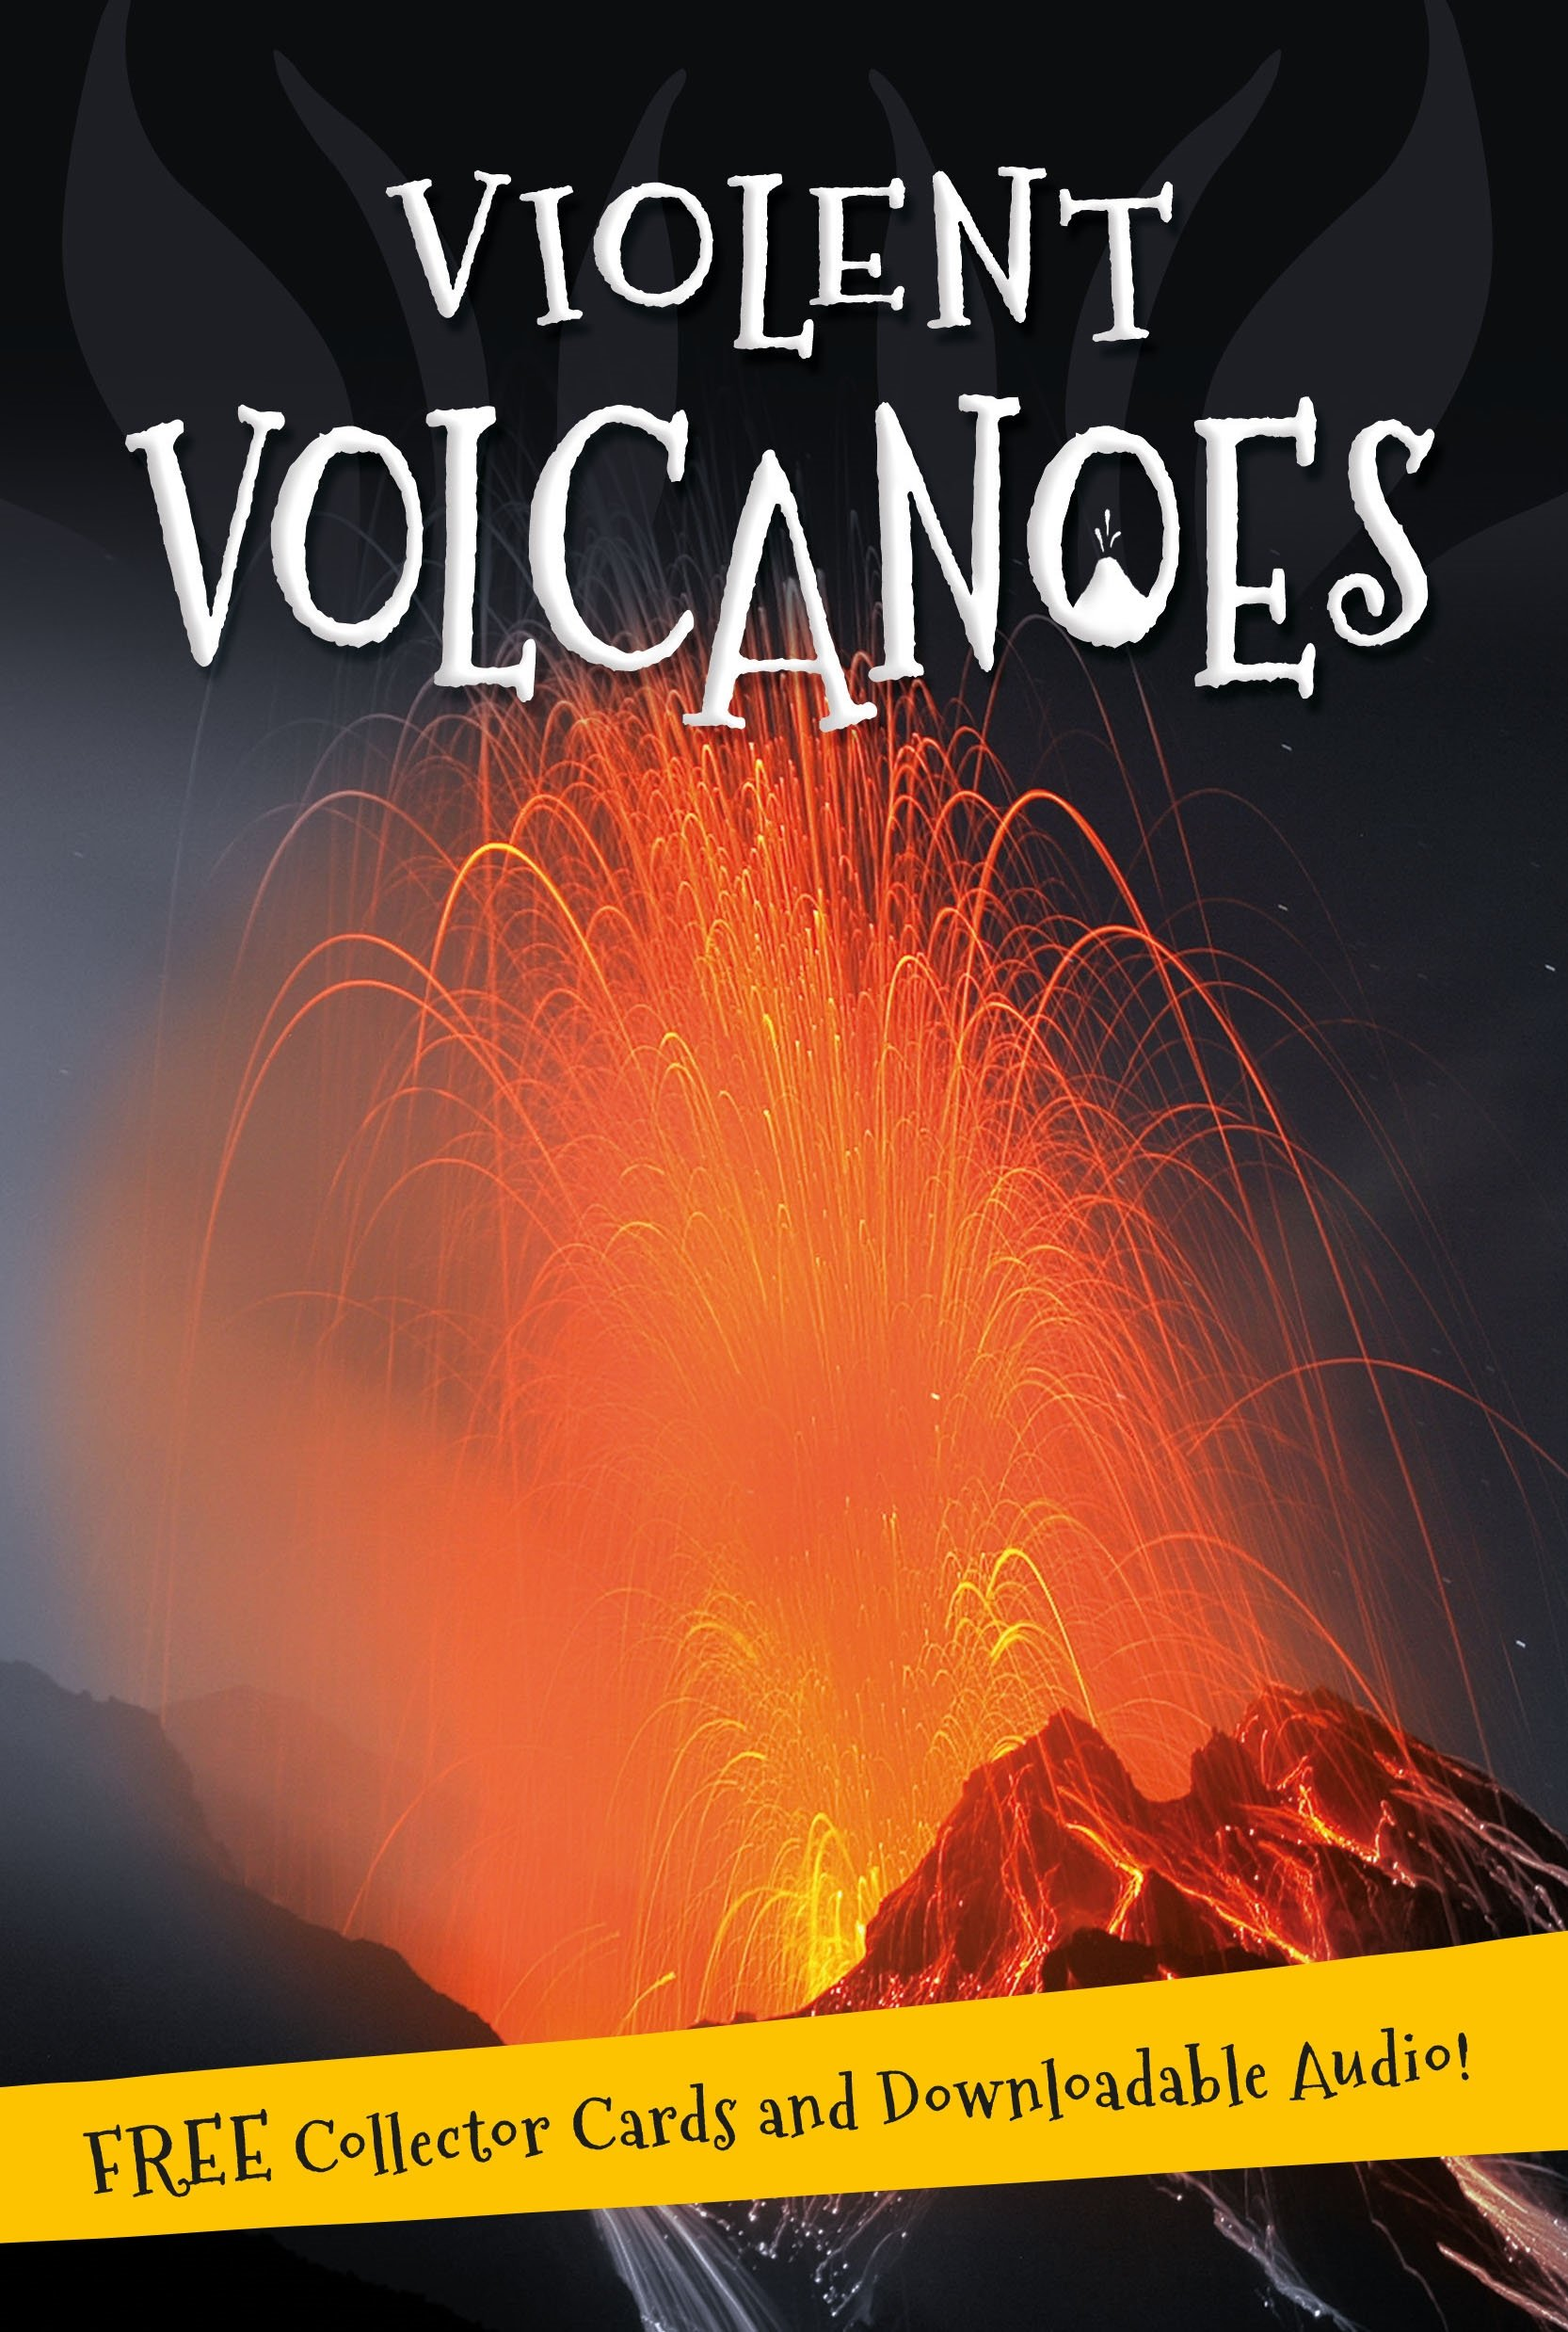 It's all about... Violent Volcanoes seeing things as they are